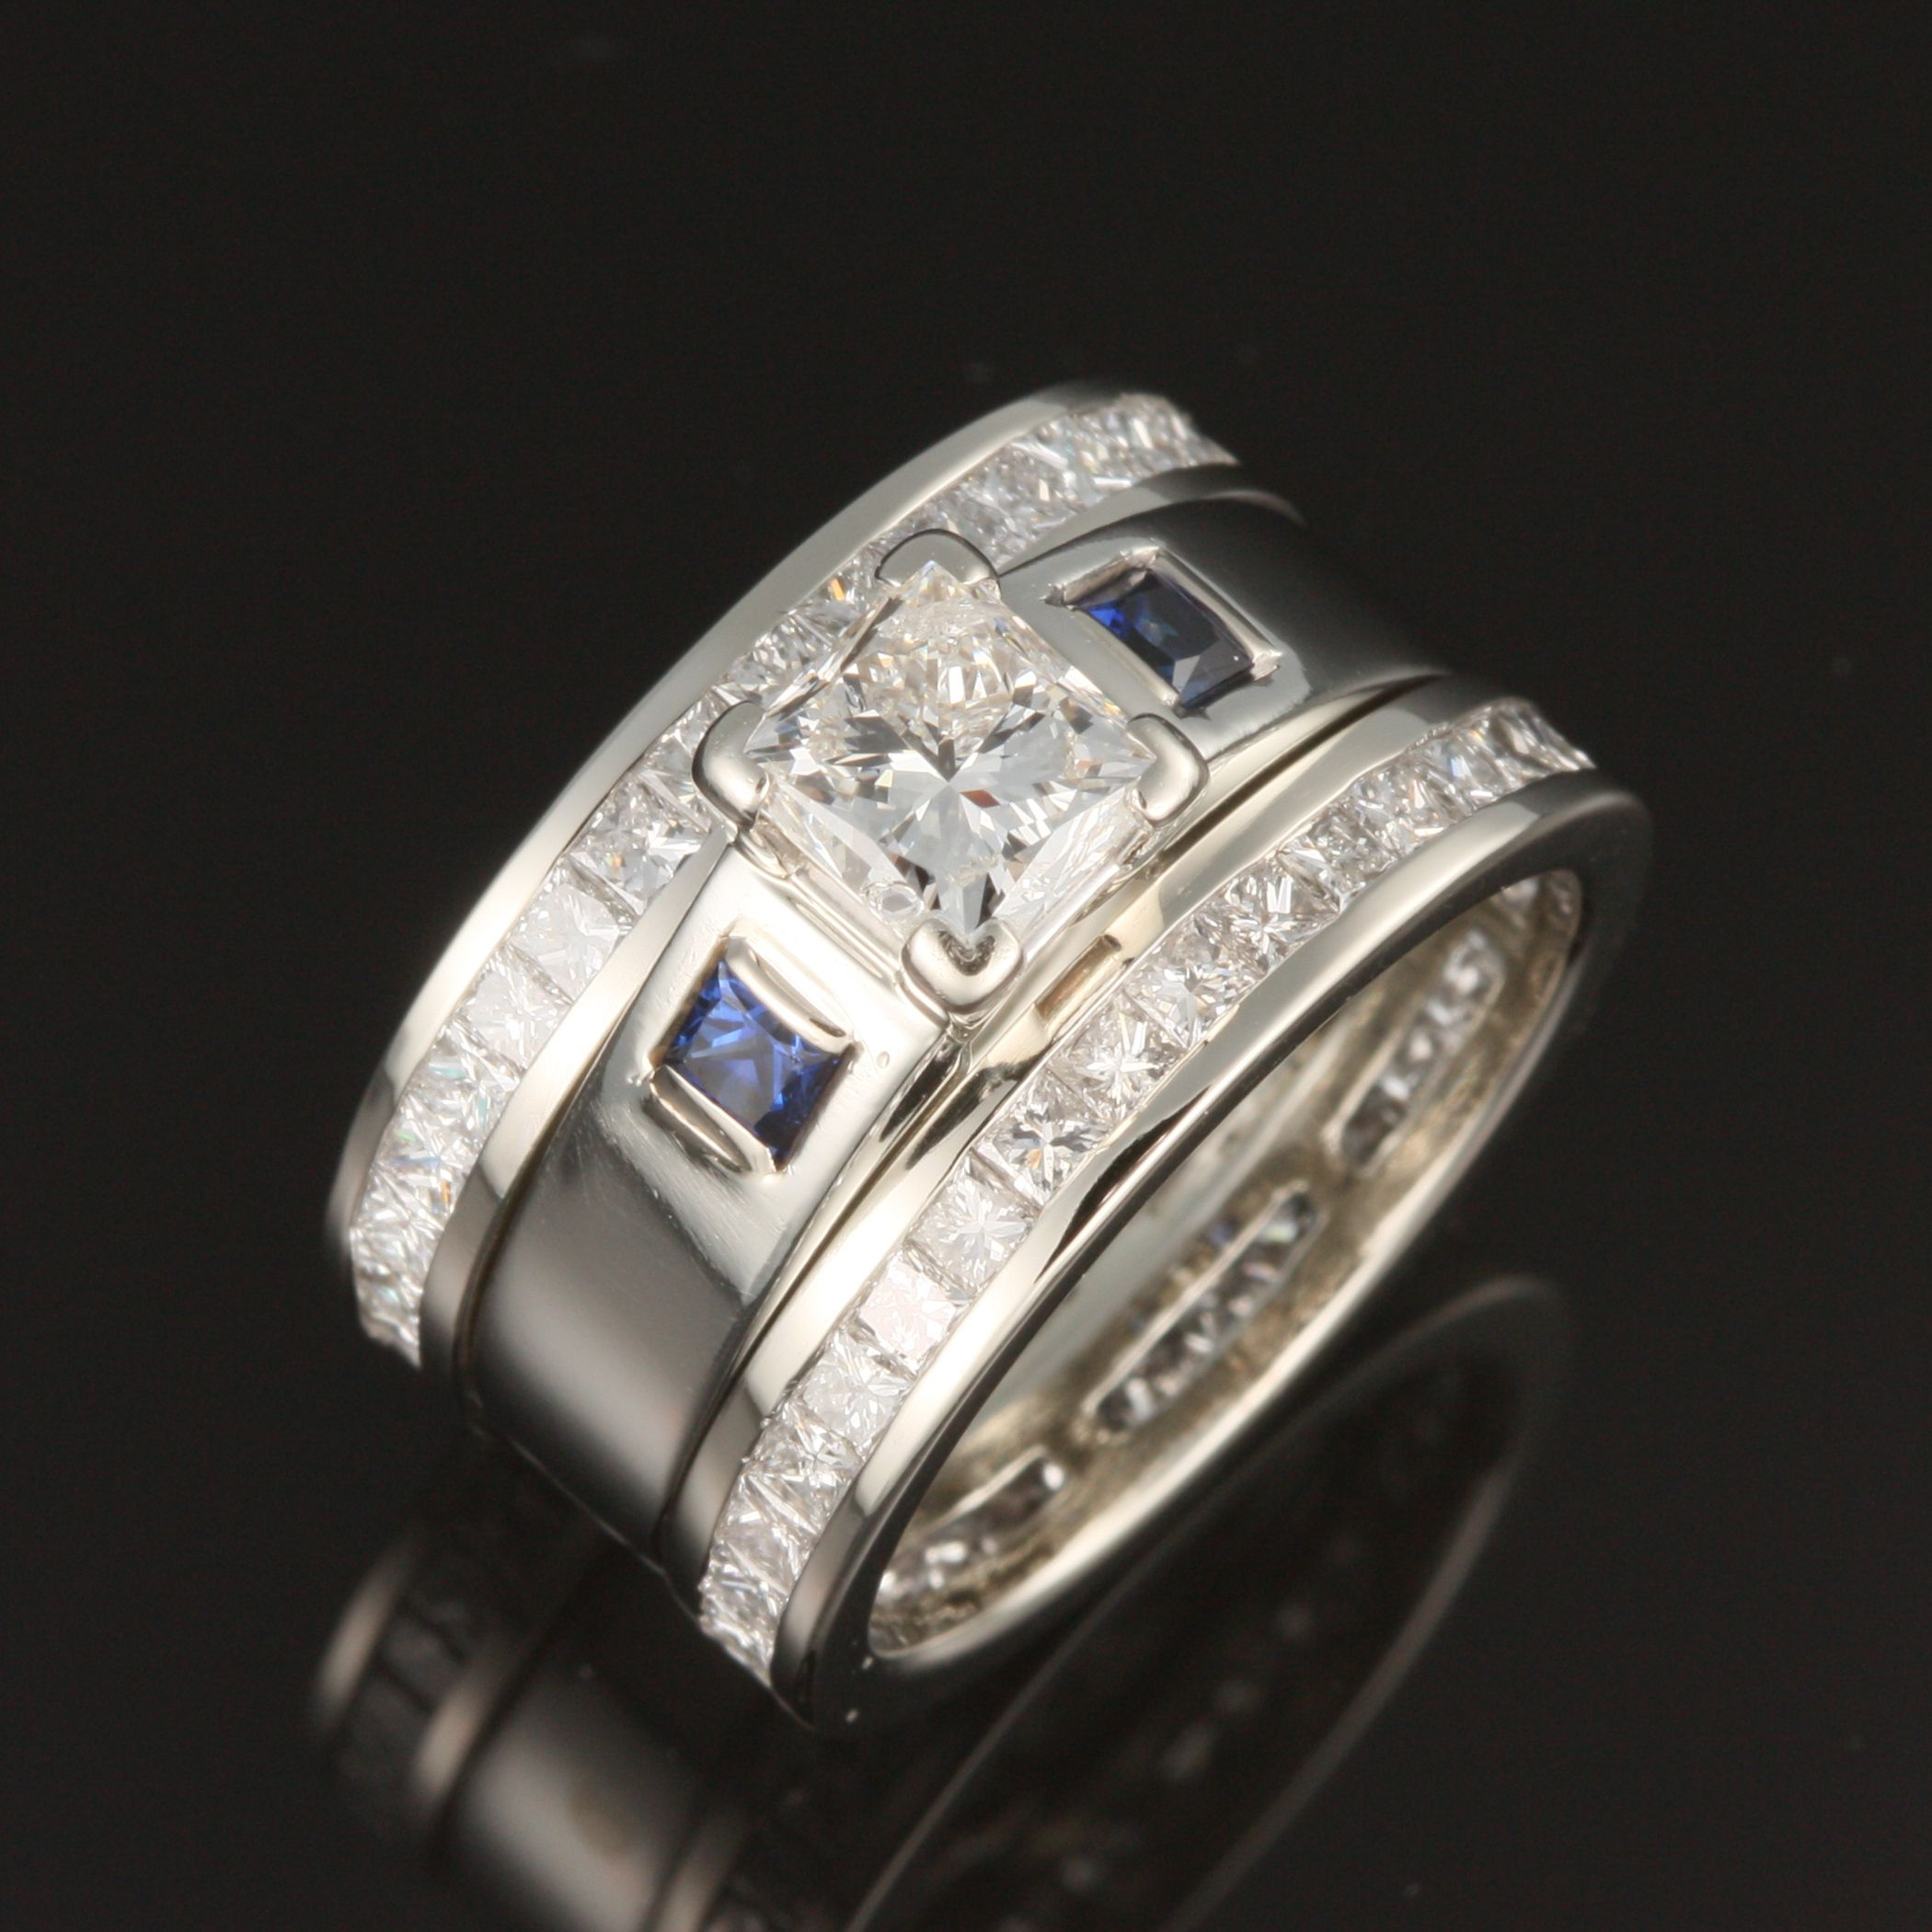 custom bezel sapphire rings diamond celebration band designed wide accents bands ring delicate pin set featuring